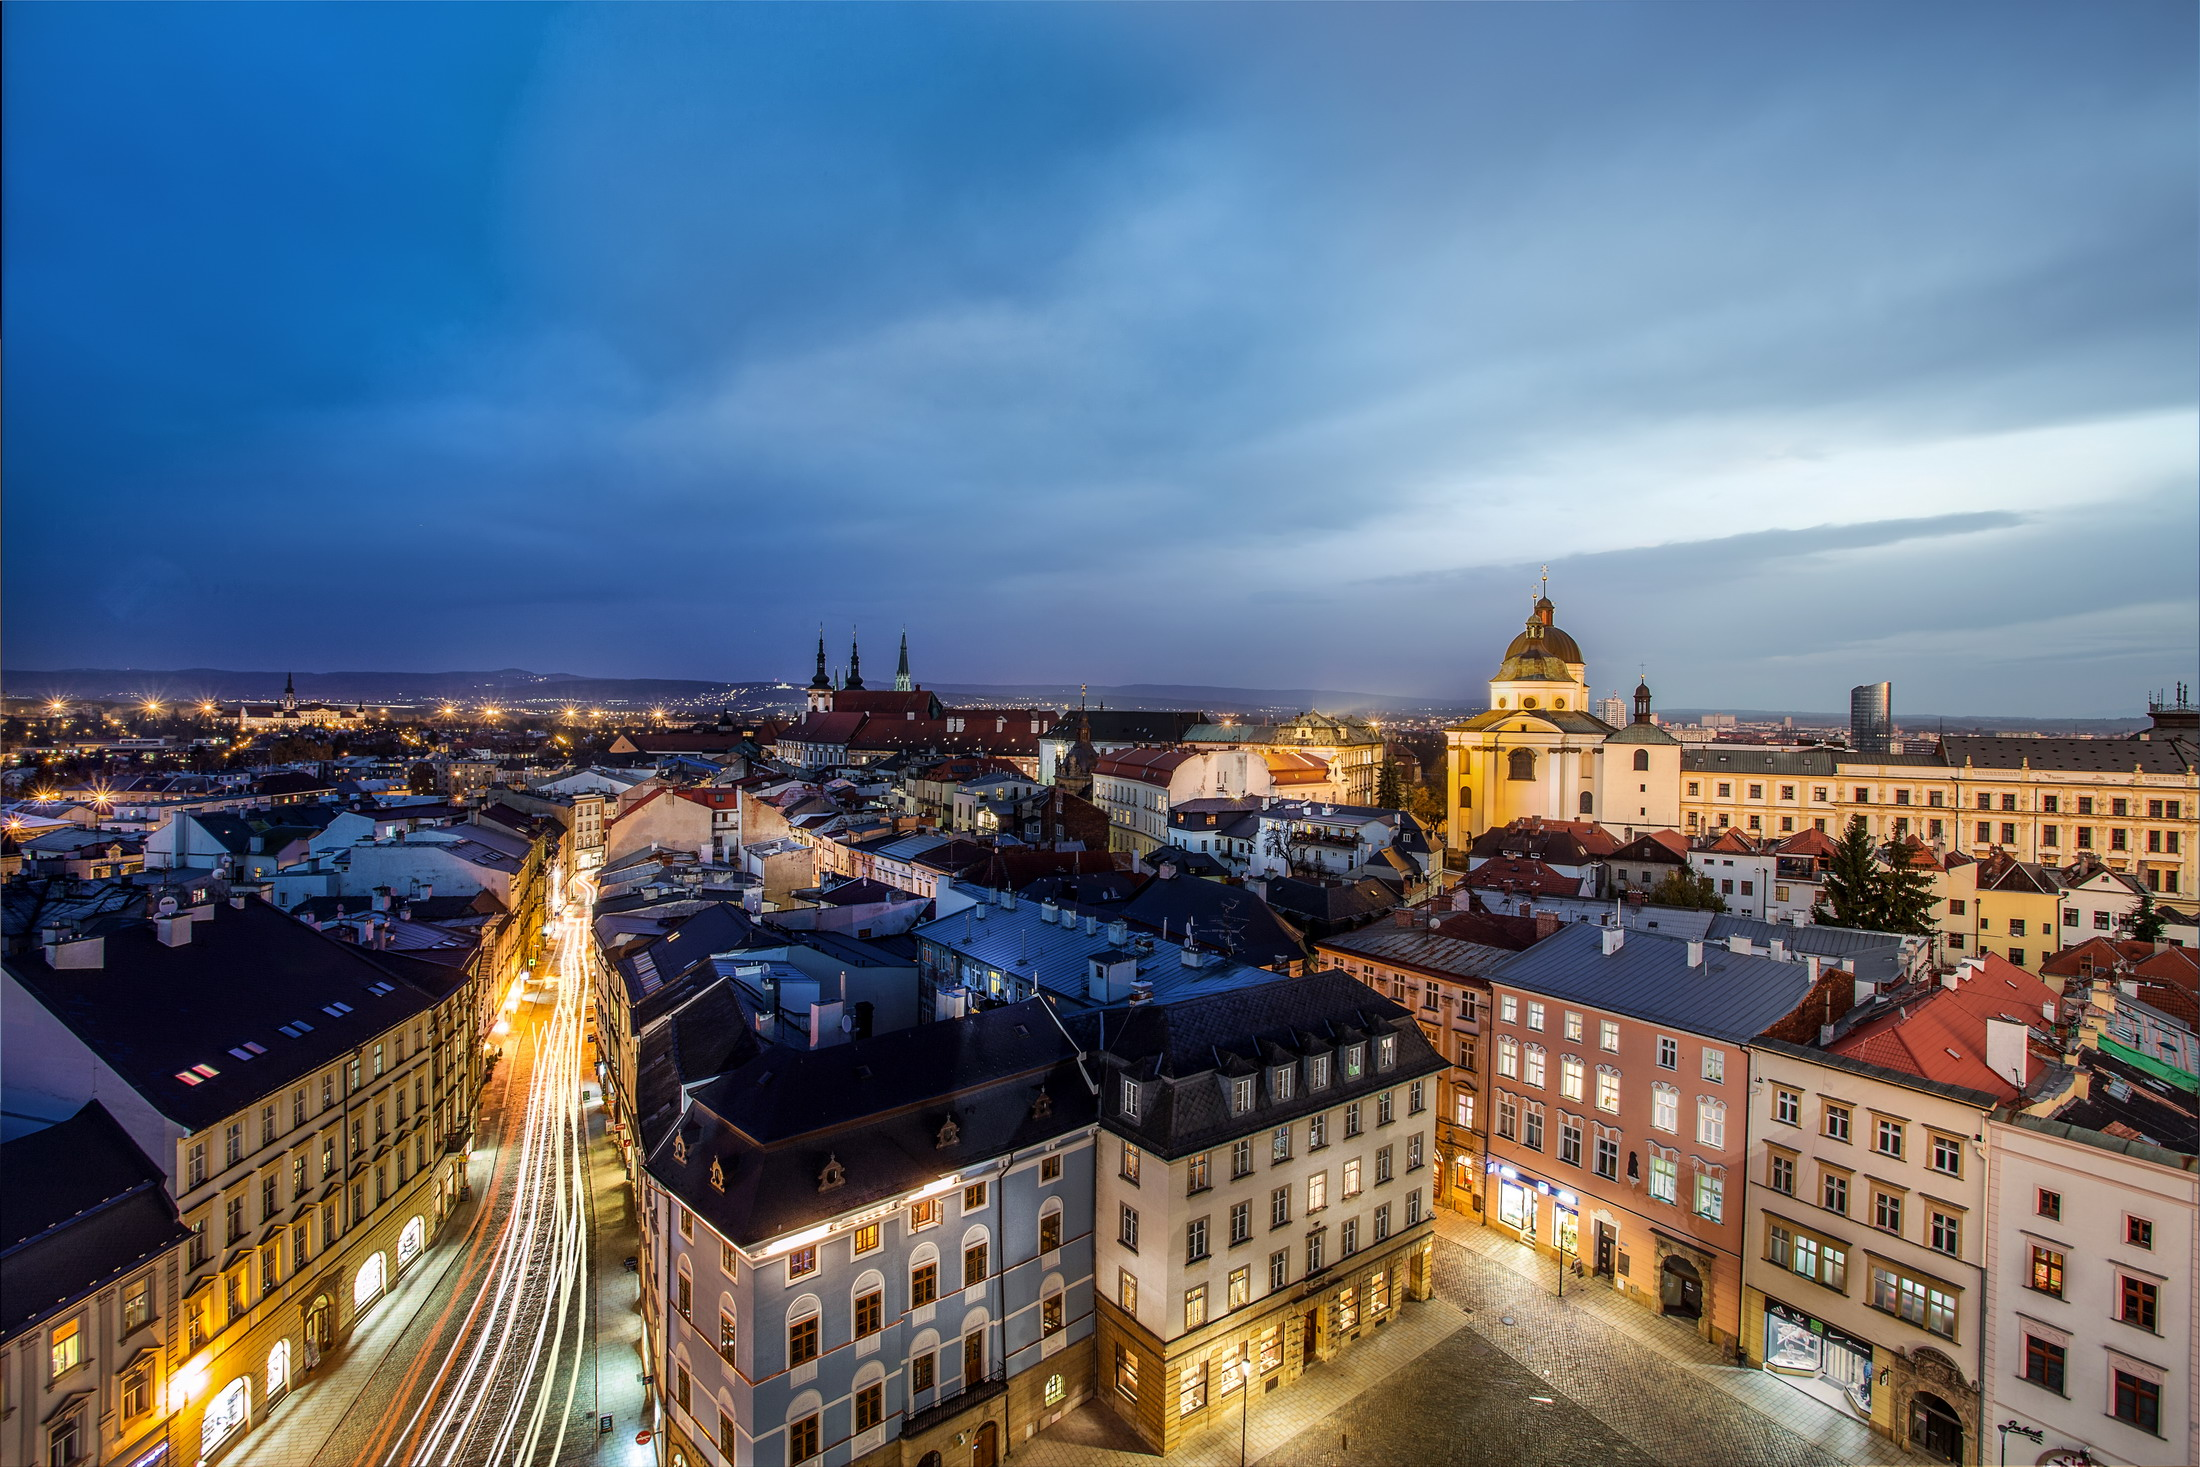 Night-time Olomouc from the Town Hall Tower